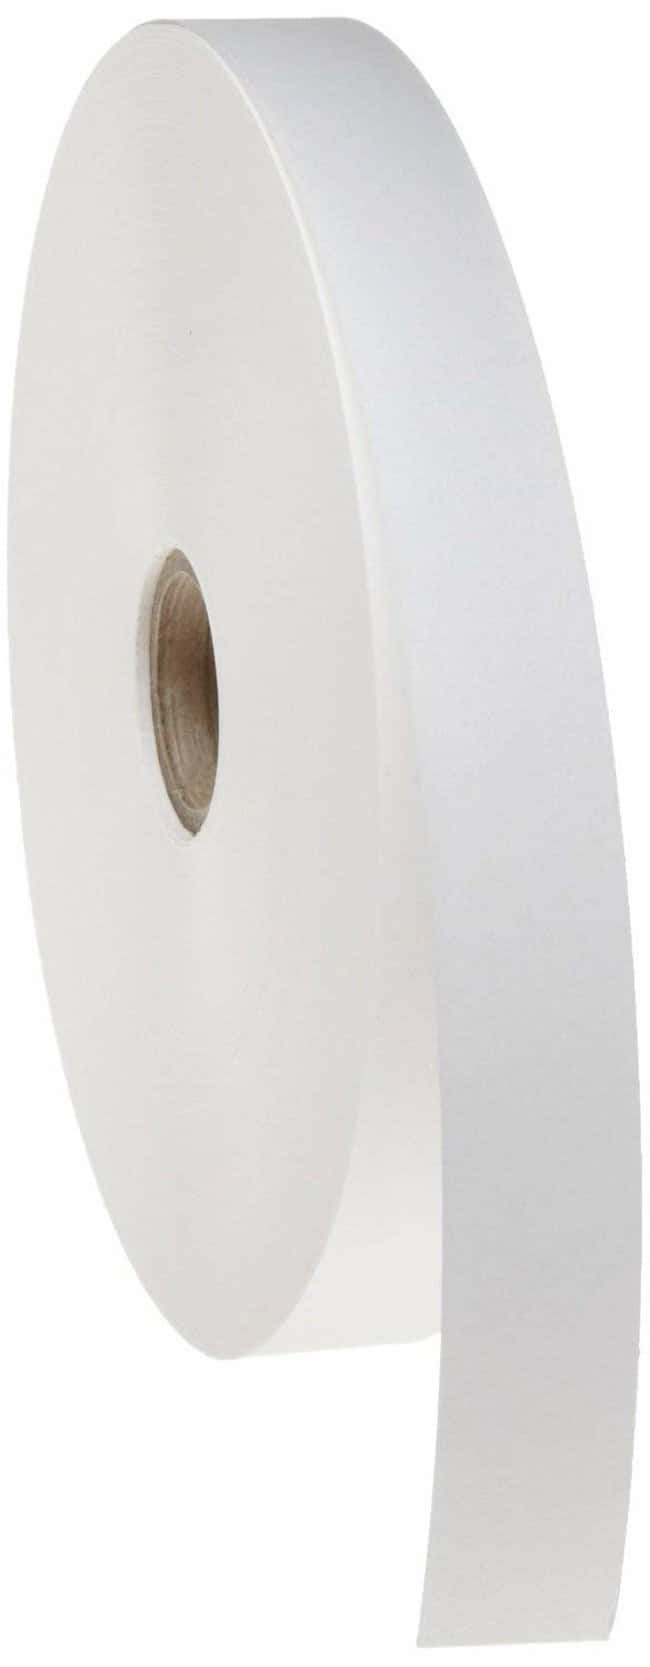 GE Healthcare Whatman 4 Chr Chromatography Paper Roll; 0.78 in. x 328 ft.